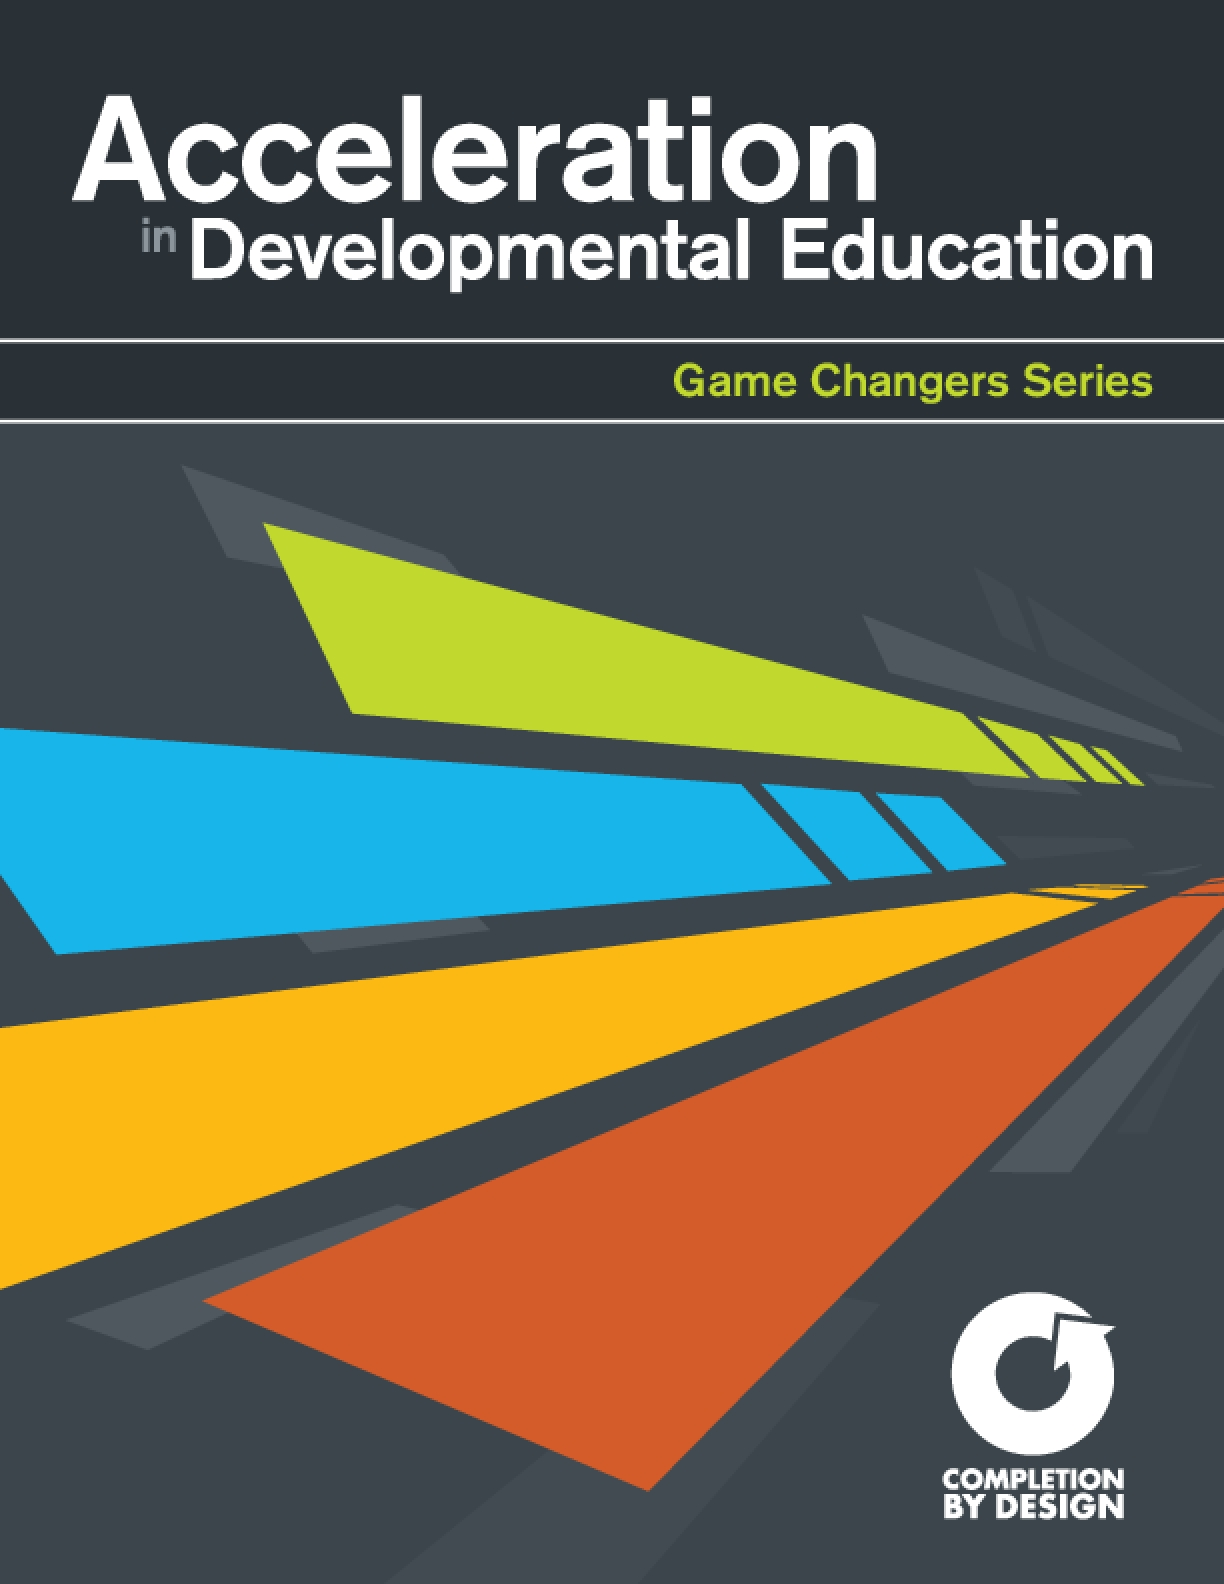 Acceleration in Developmental Education: Game Changers Series